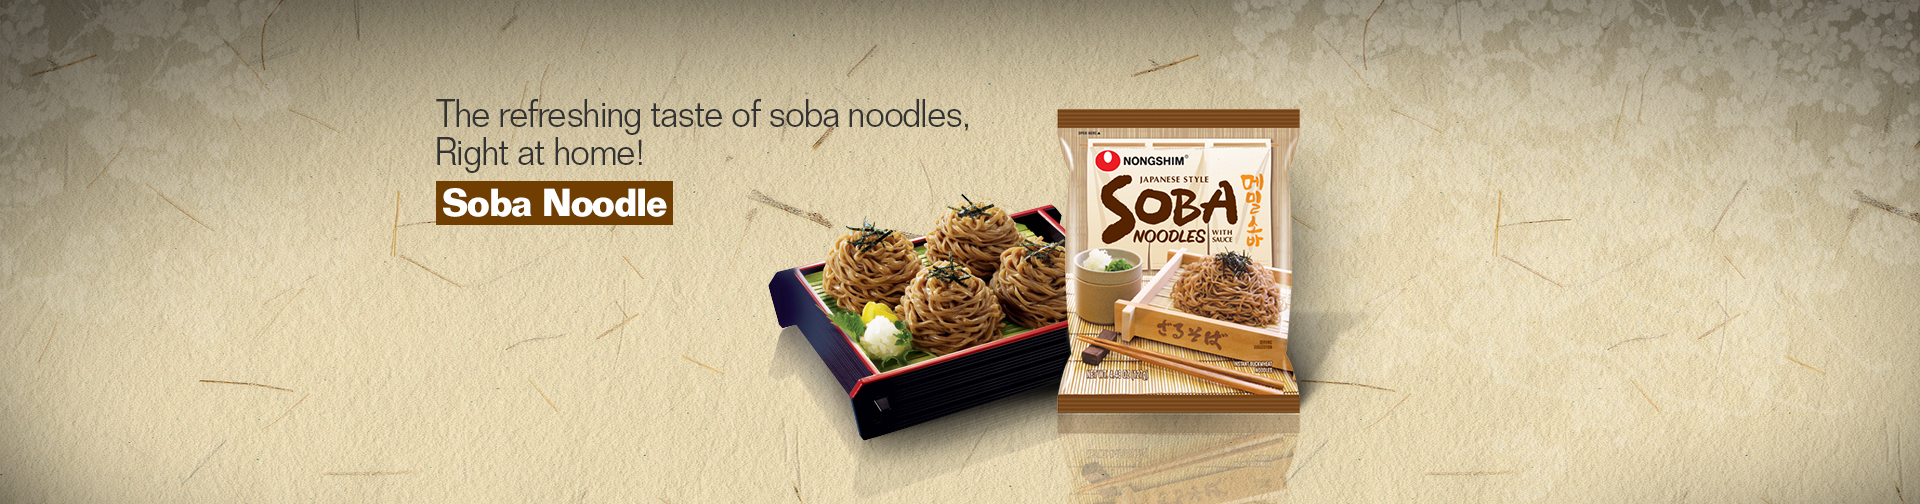 The refreshing taste of soba noodles,